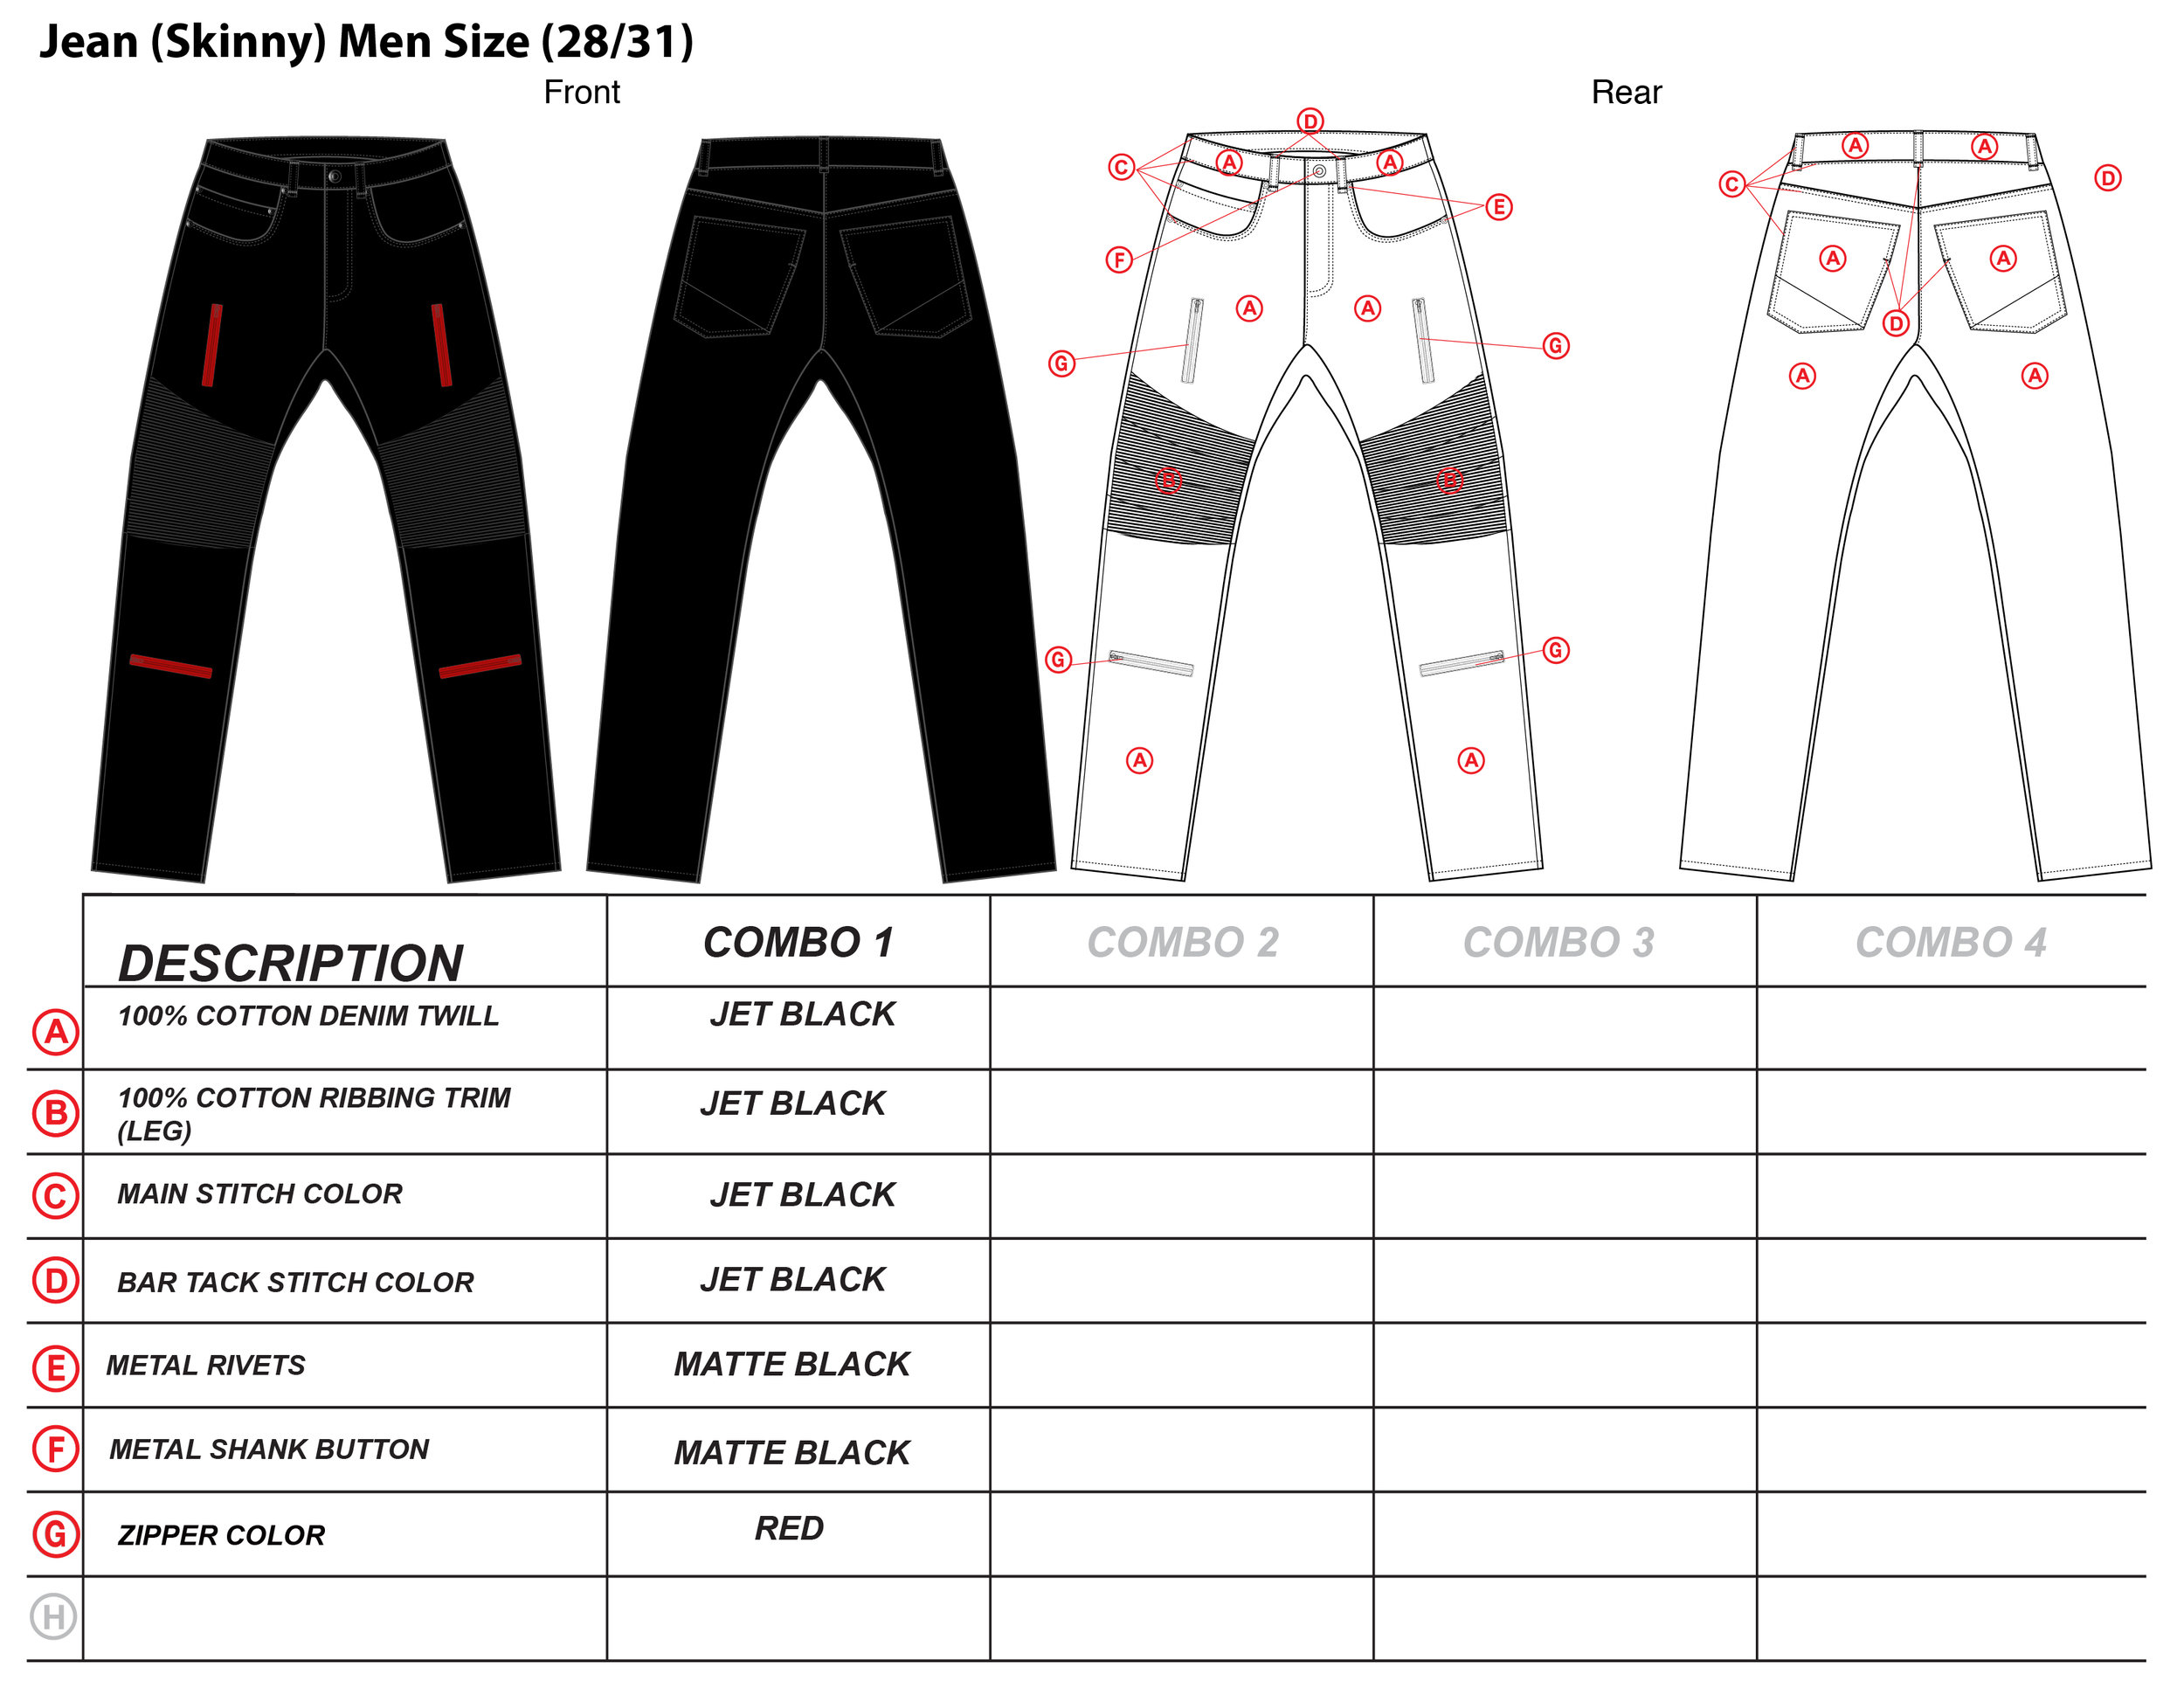 Skinnyjeans-REVISED-02-01-01.jpg